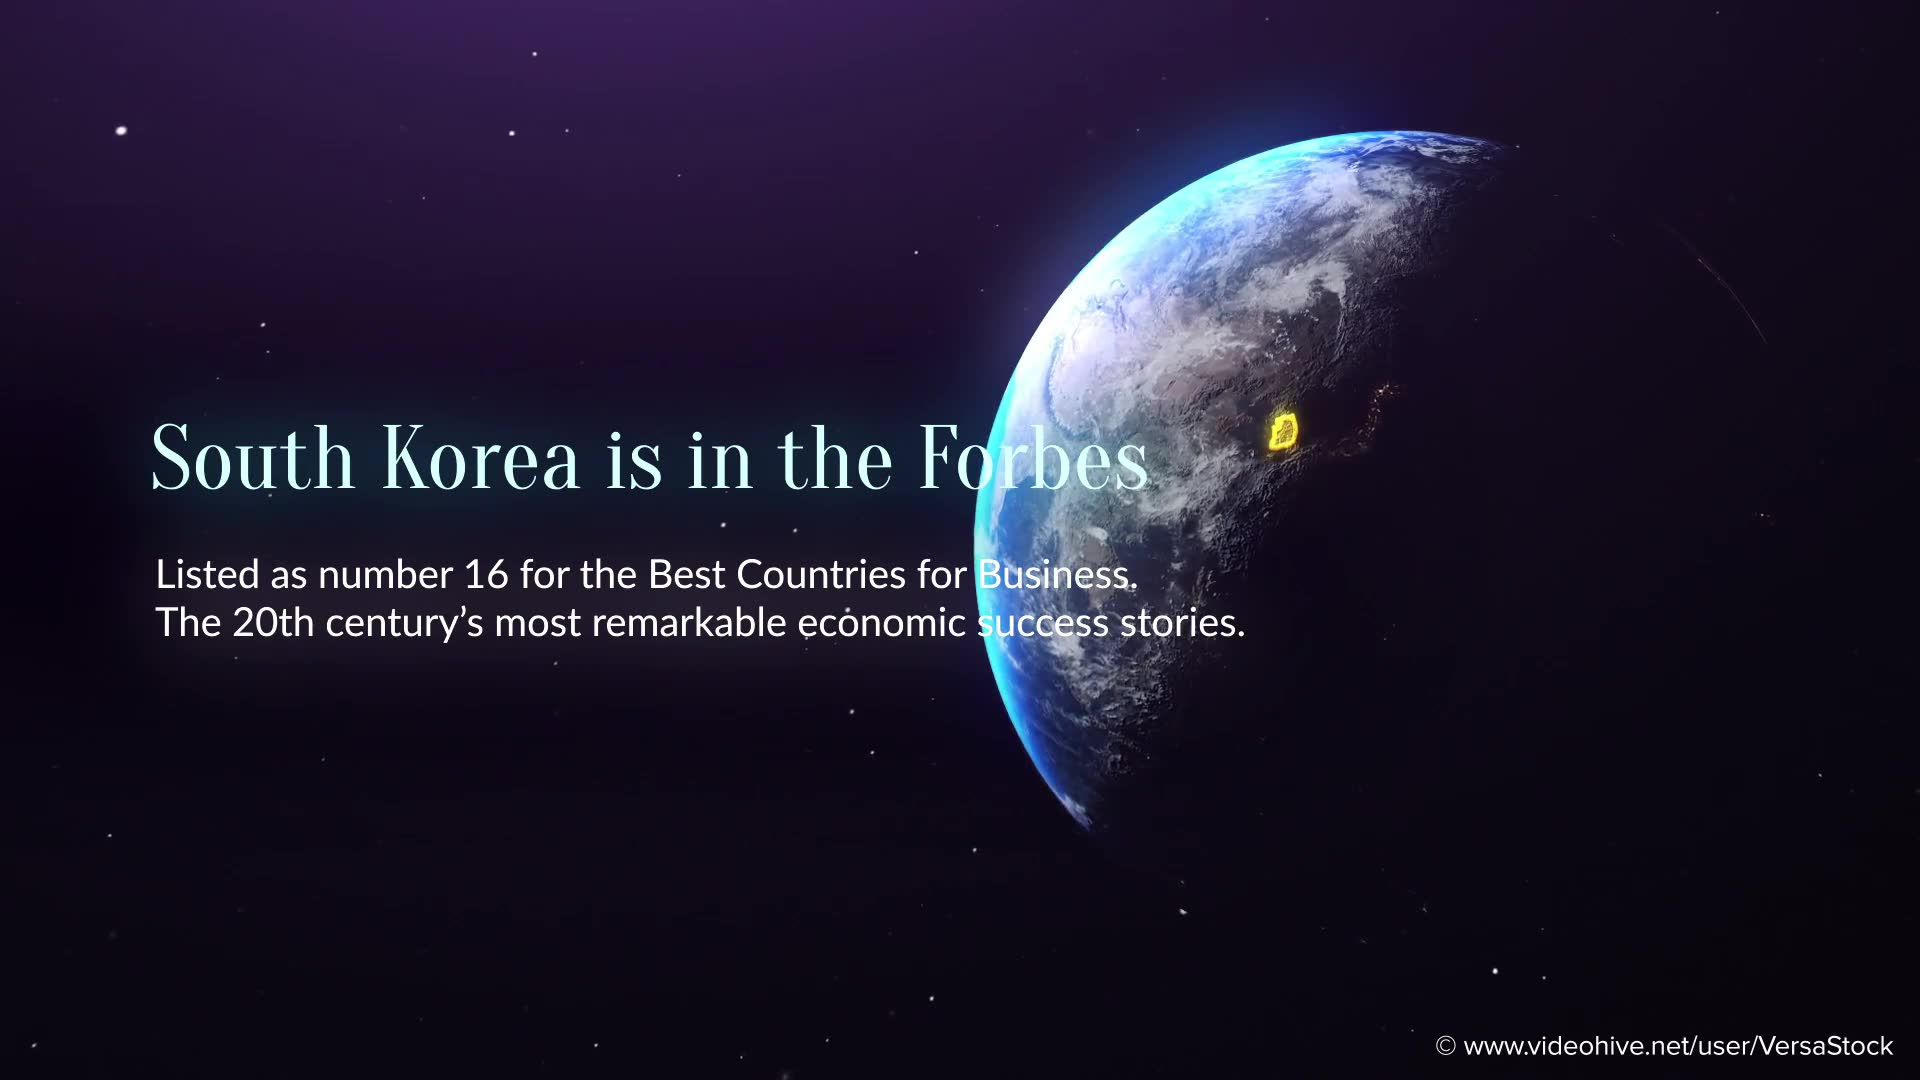 Global Economics From Space Infographics Videohive 25031384 After Effects Image 2